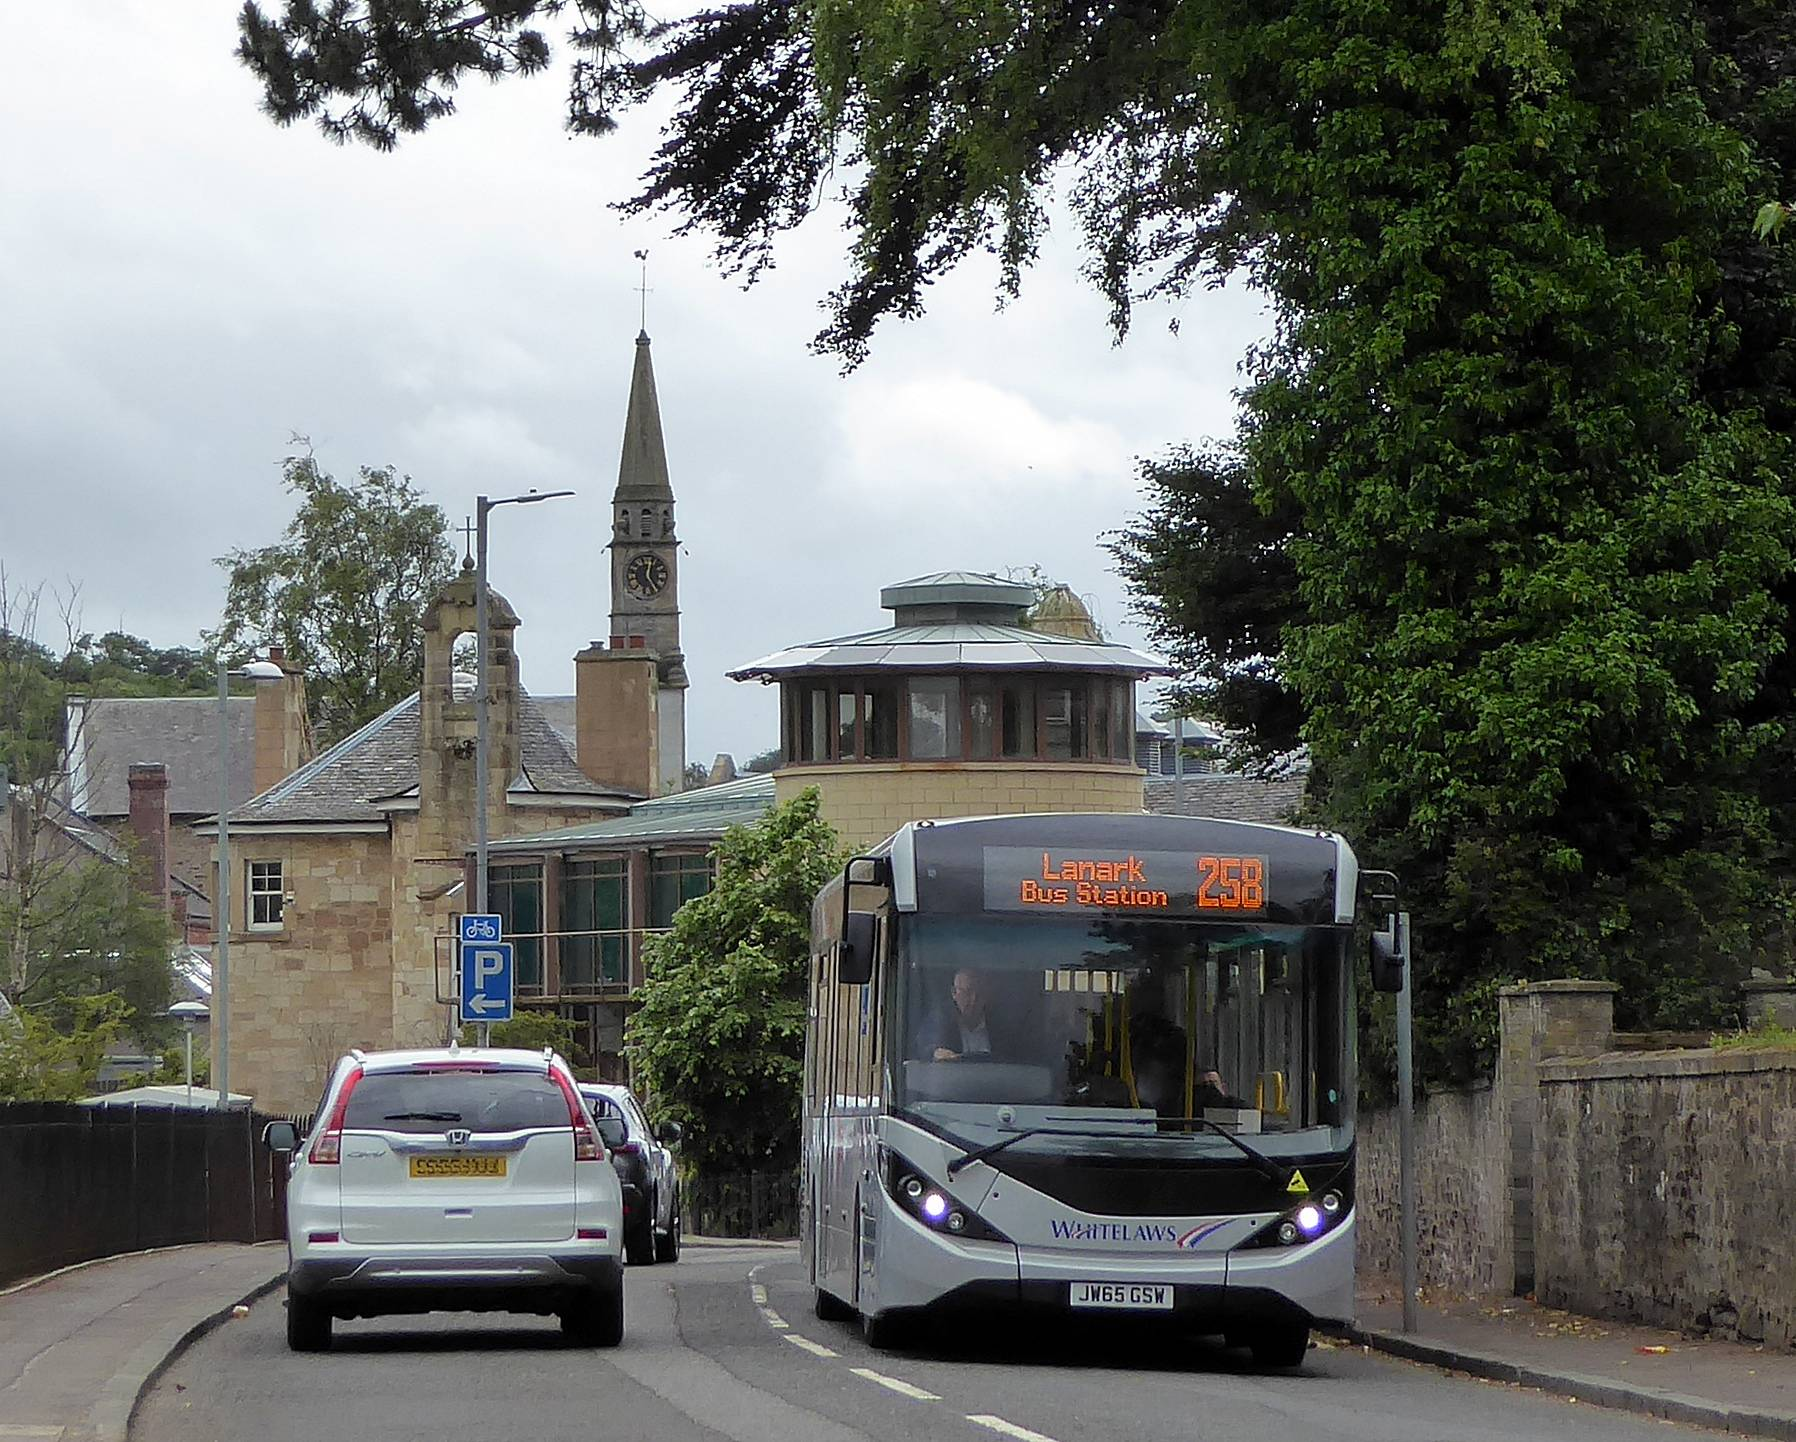 258 Lanark bus in Abbeygreen, Lesmahagow